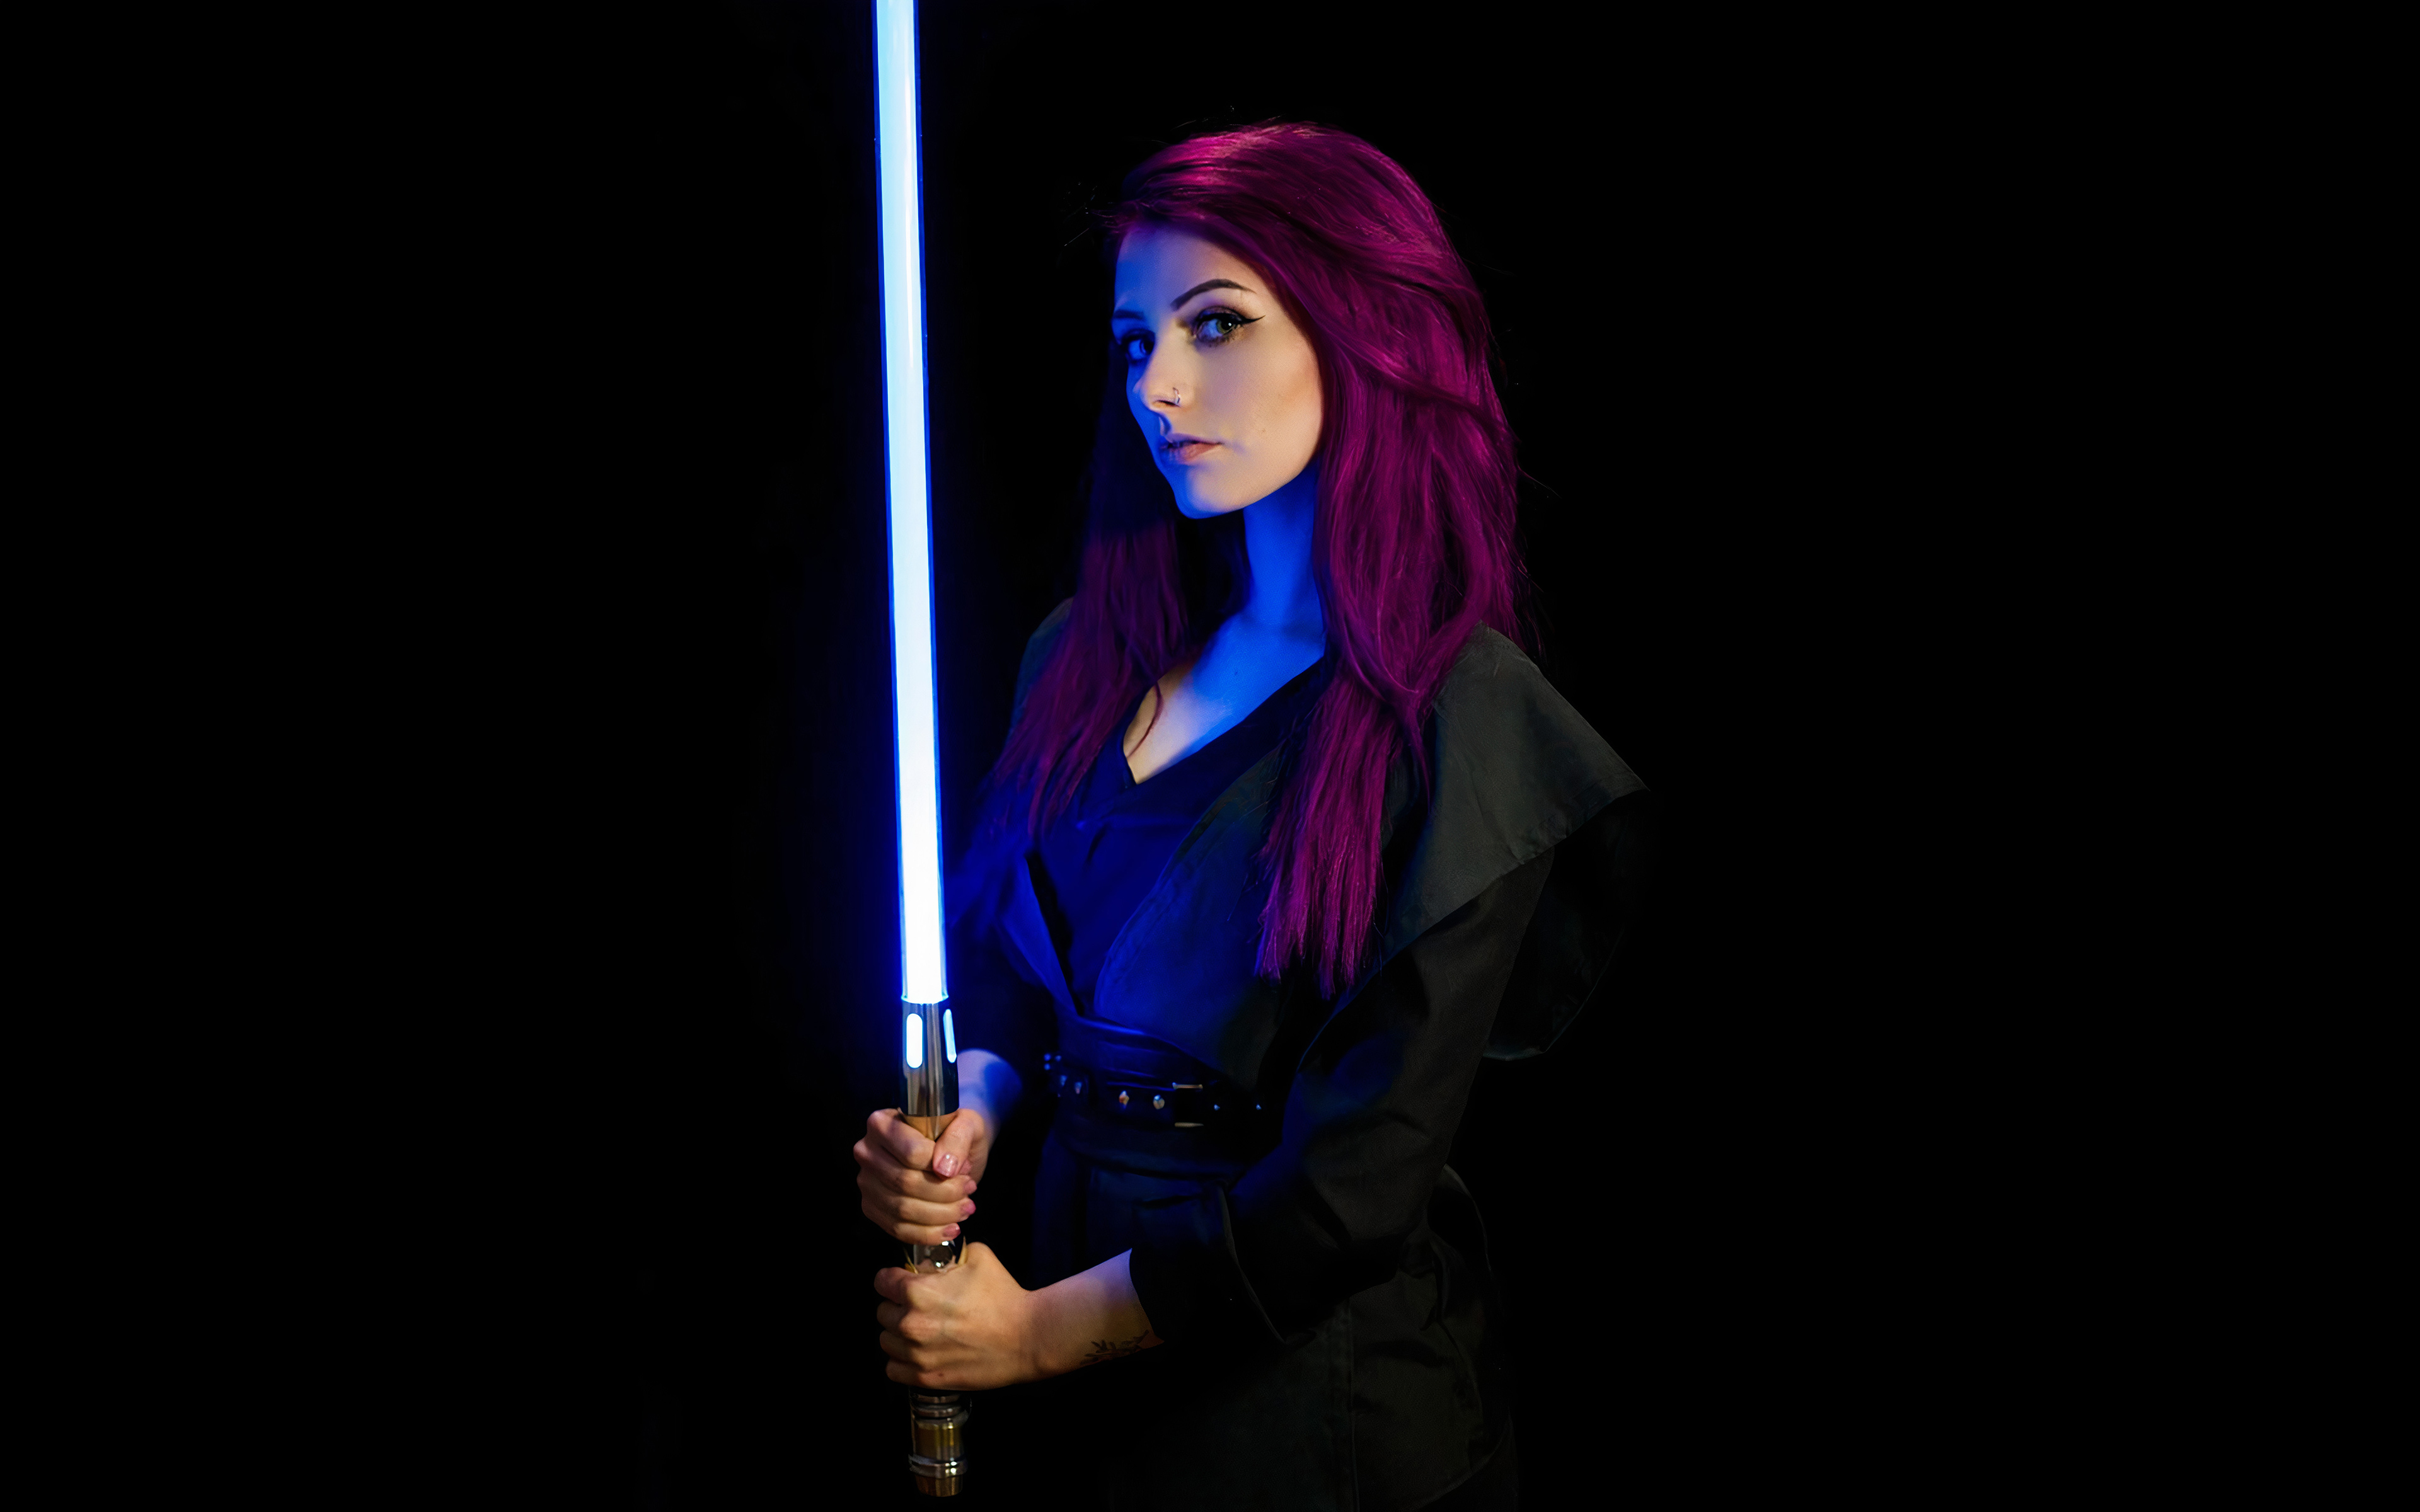 1400x1050 Jedi Star Wars Girl Cosplay 4k 1400x1050 Resolution Hd 4k Wallpapers Images Backgrounds Photos And Pictures